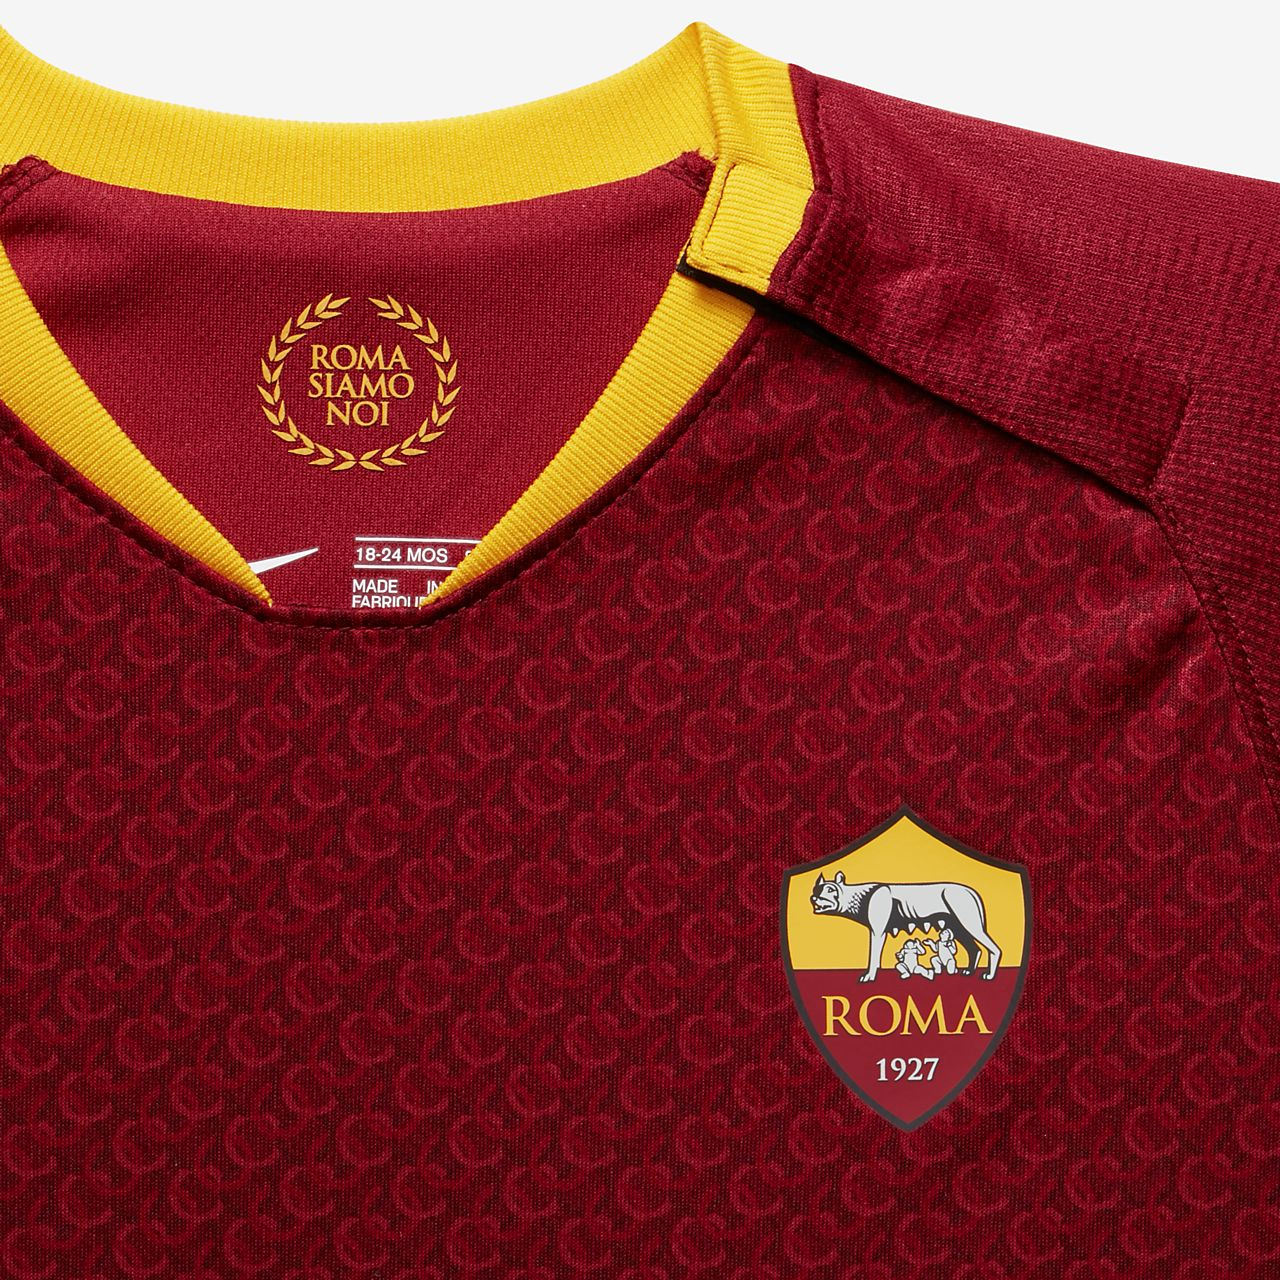 32c3ba1a2a4 2018 19 A.S. Roma Stadium Home Baby Football Kit. Nike.com CA